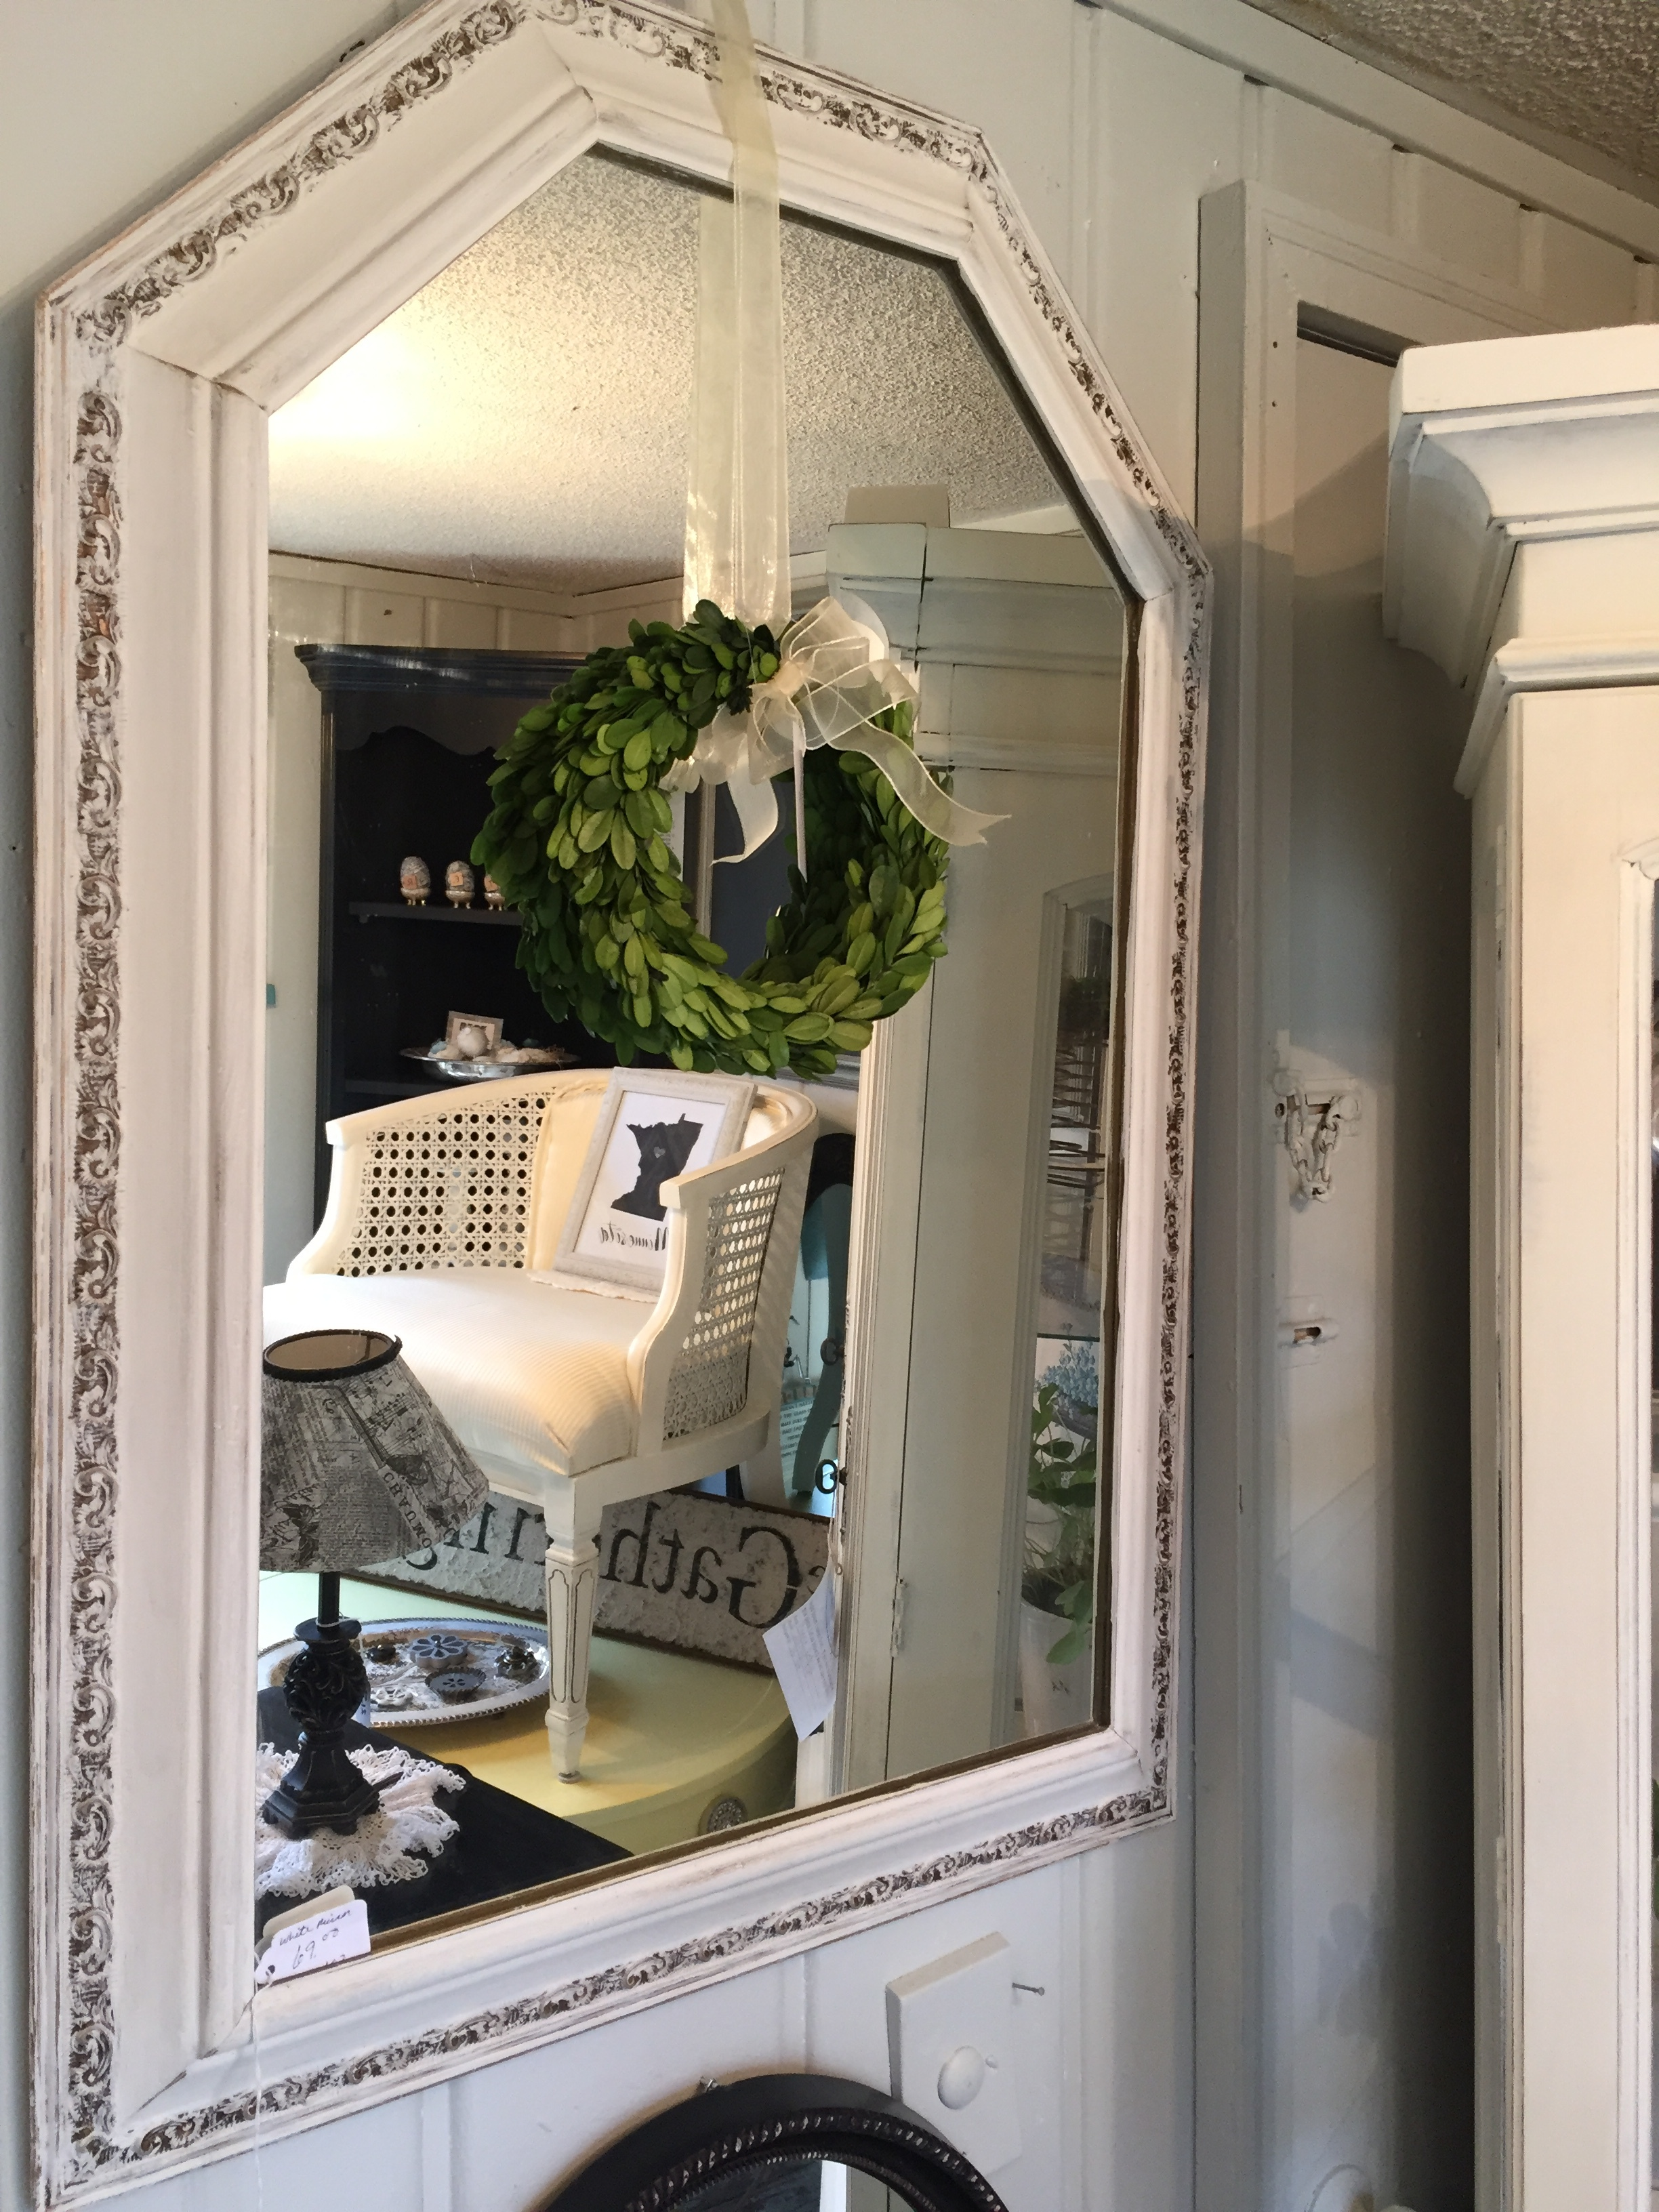 10. Open up small spaces with a vintage mirror. This ornate design on such a large mirror is especially nice. LOVE!